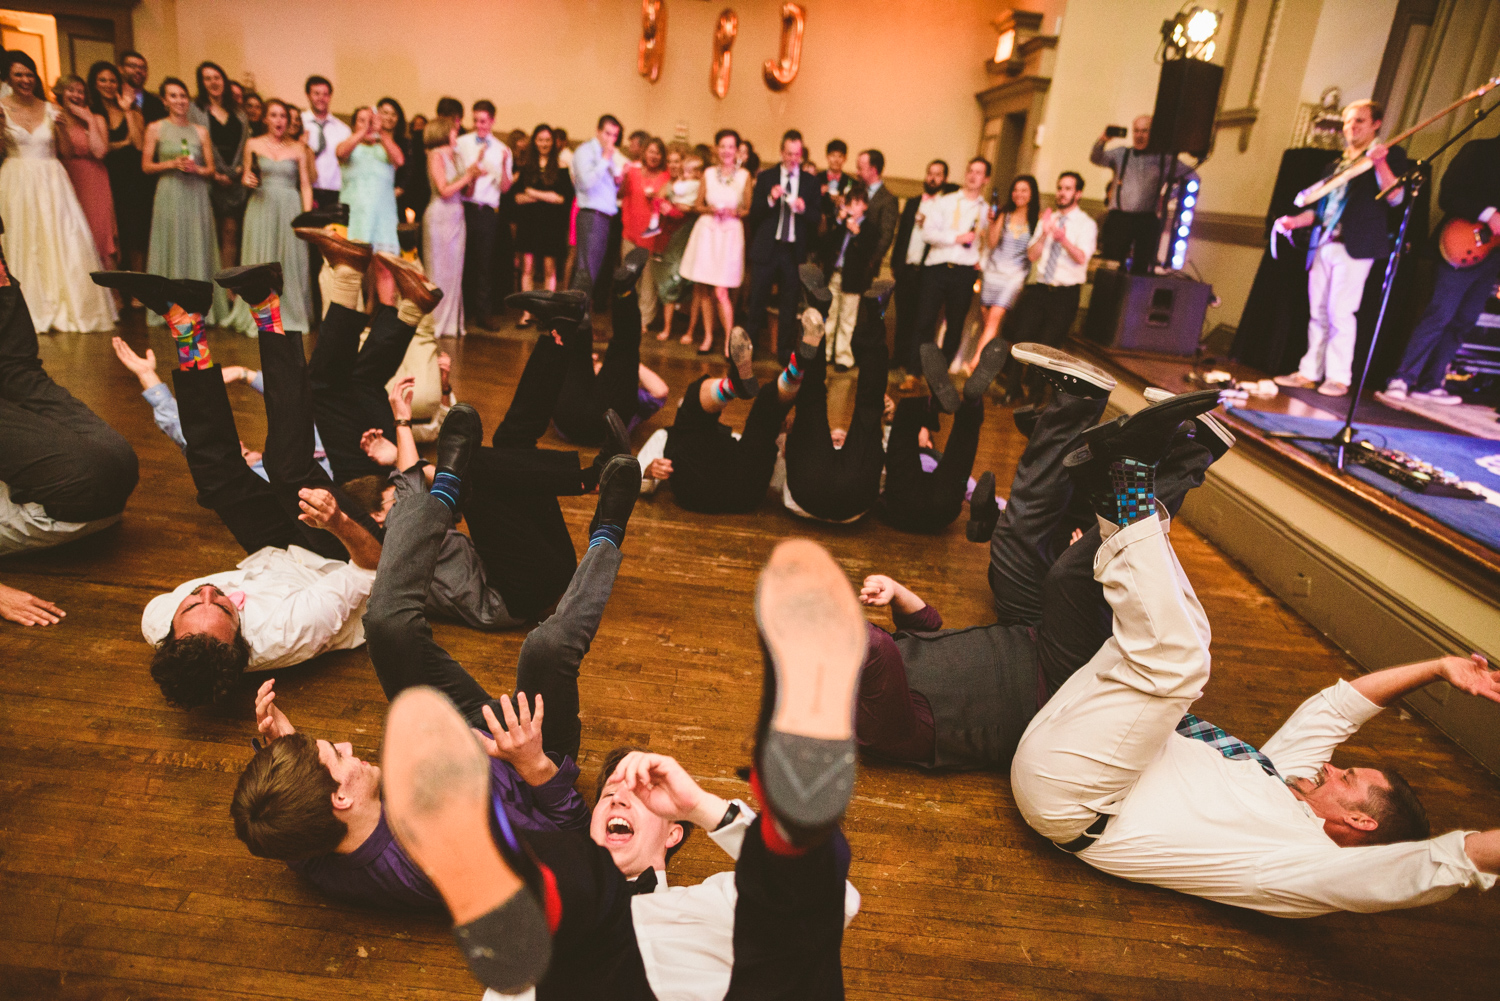 028 - special dancing groom going crazy with funny socks.jpg